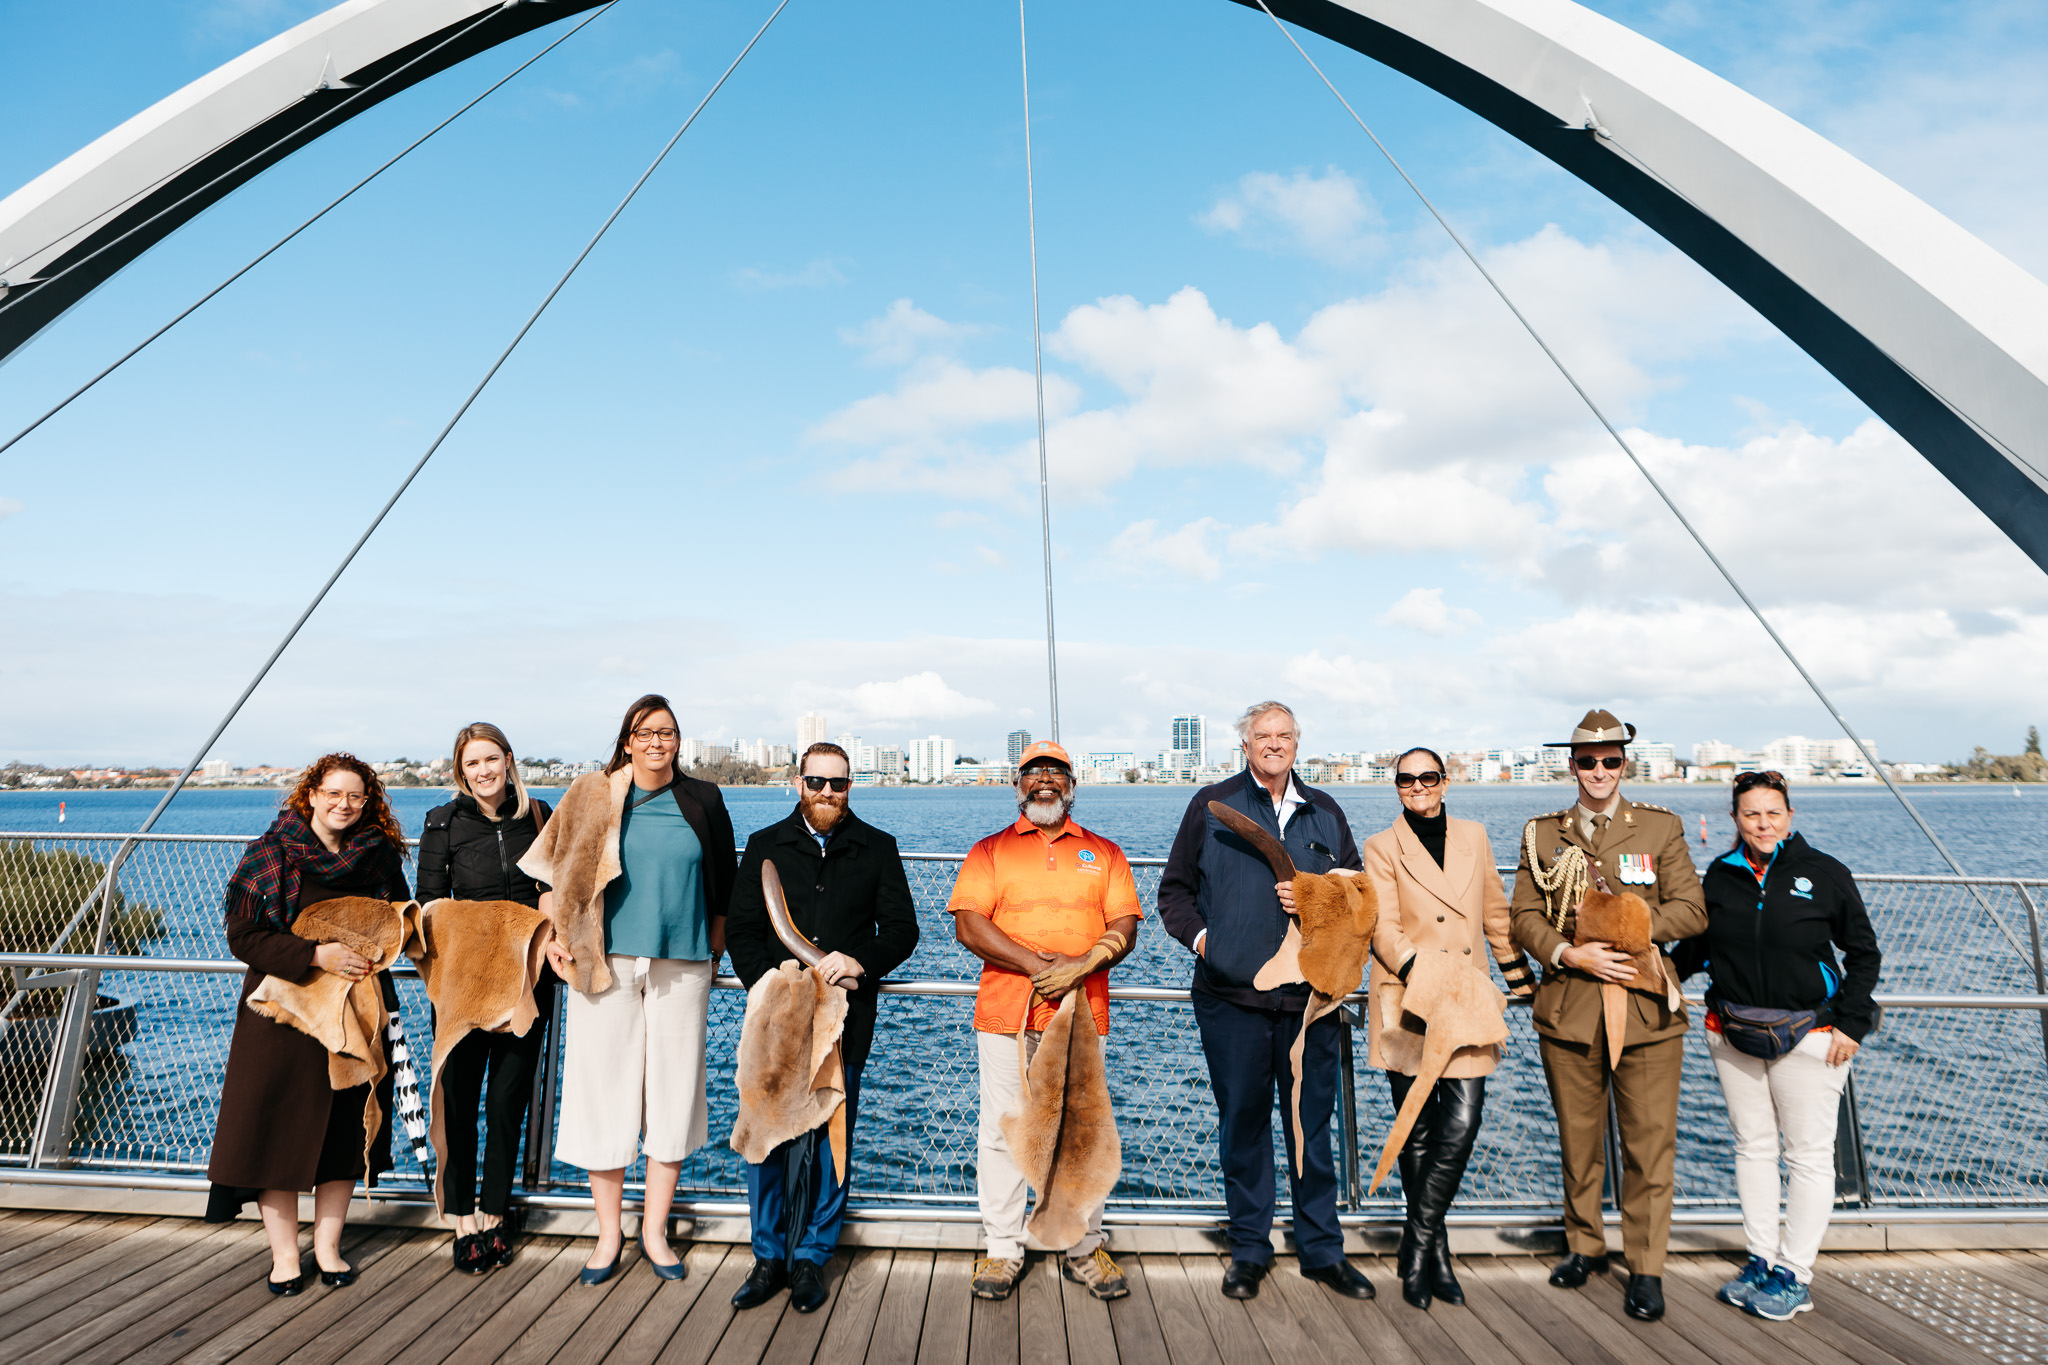 The Governor and Ms Annus with five staff members and tour guides standing on bridge